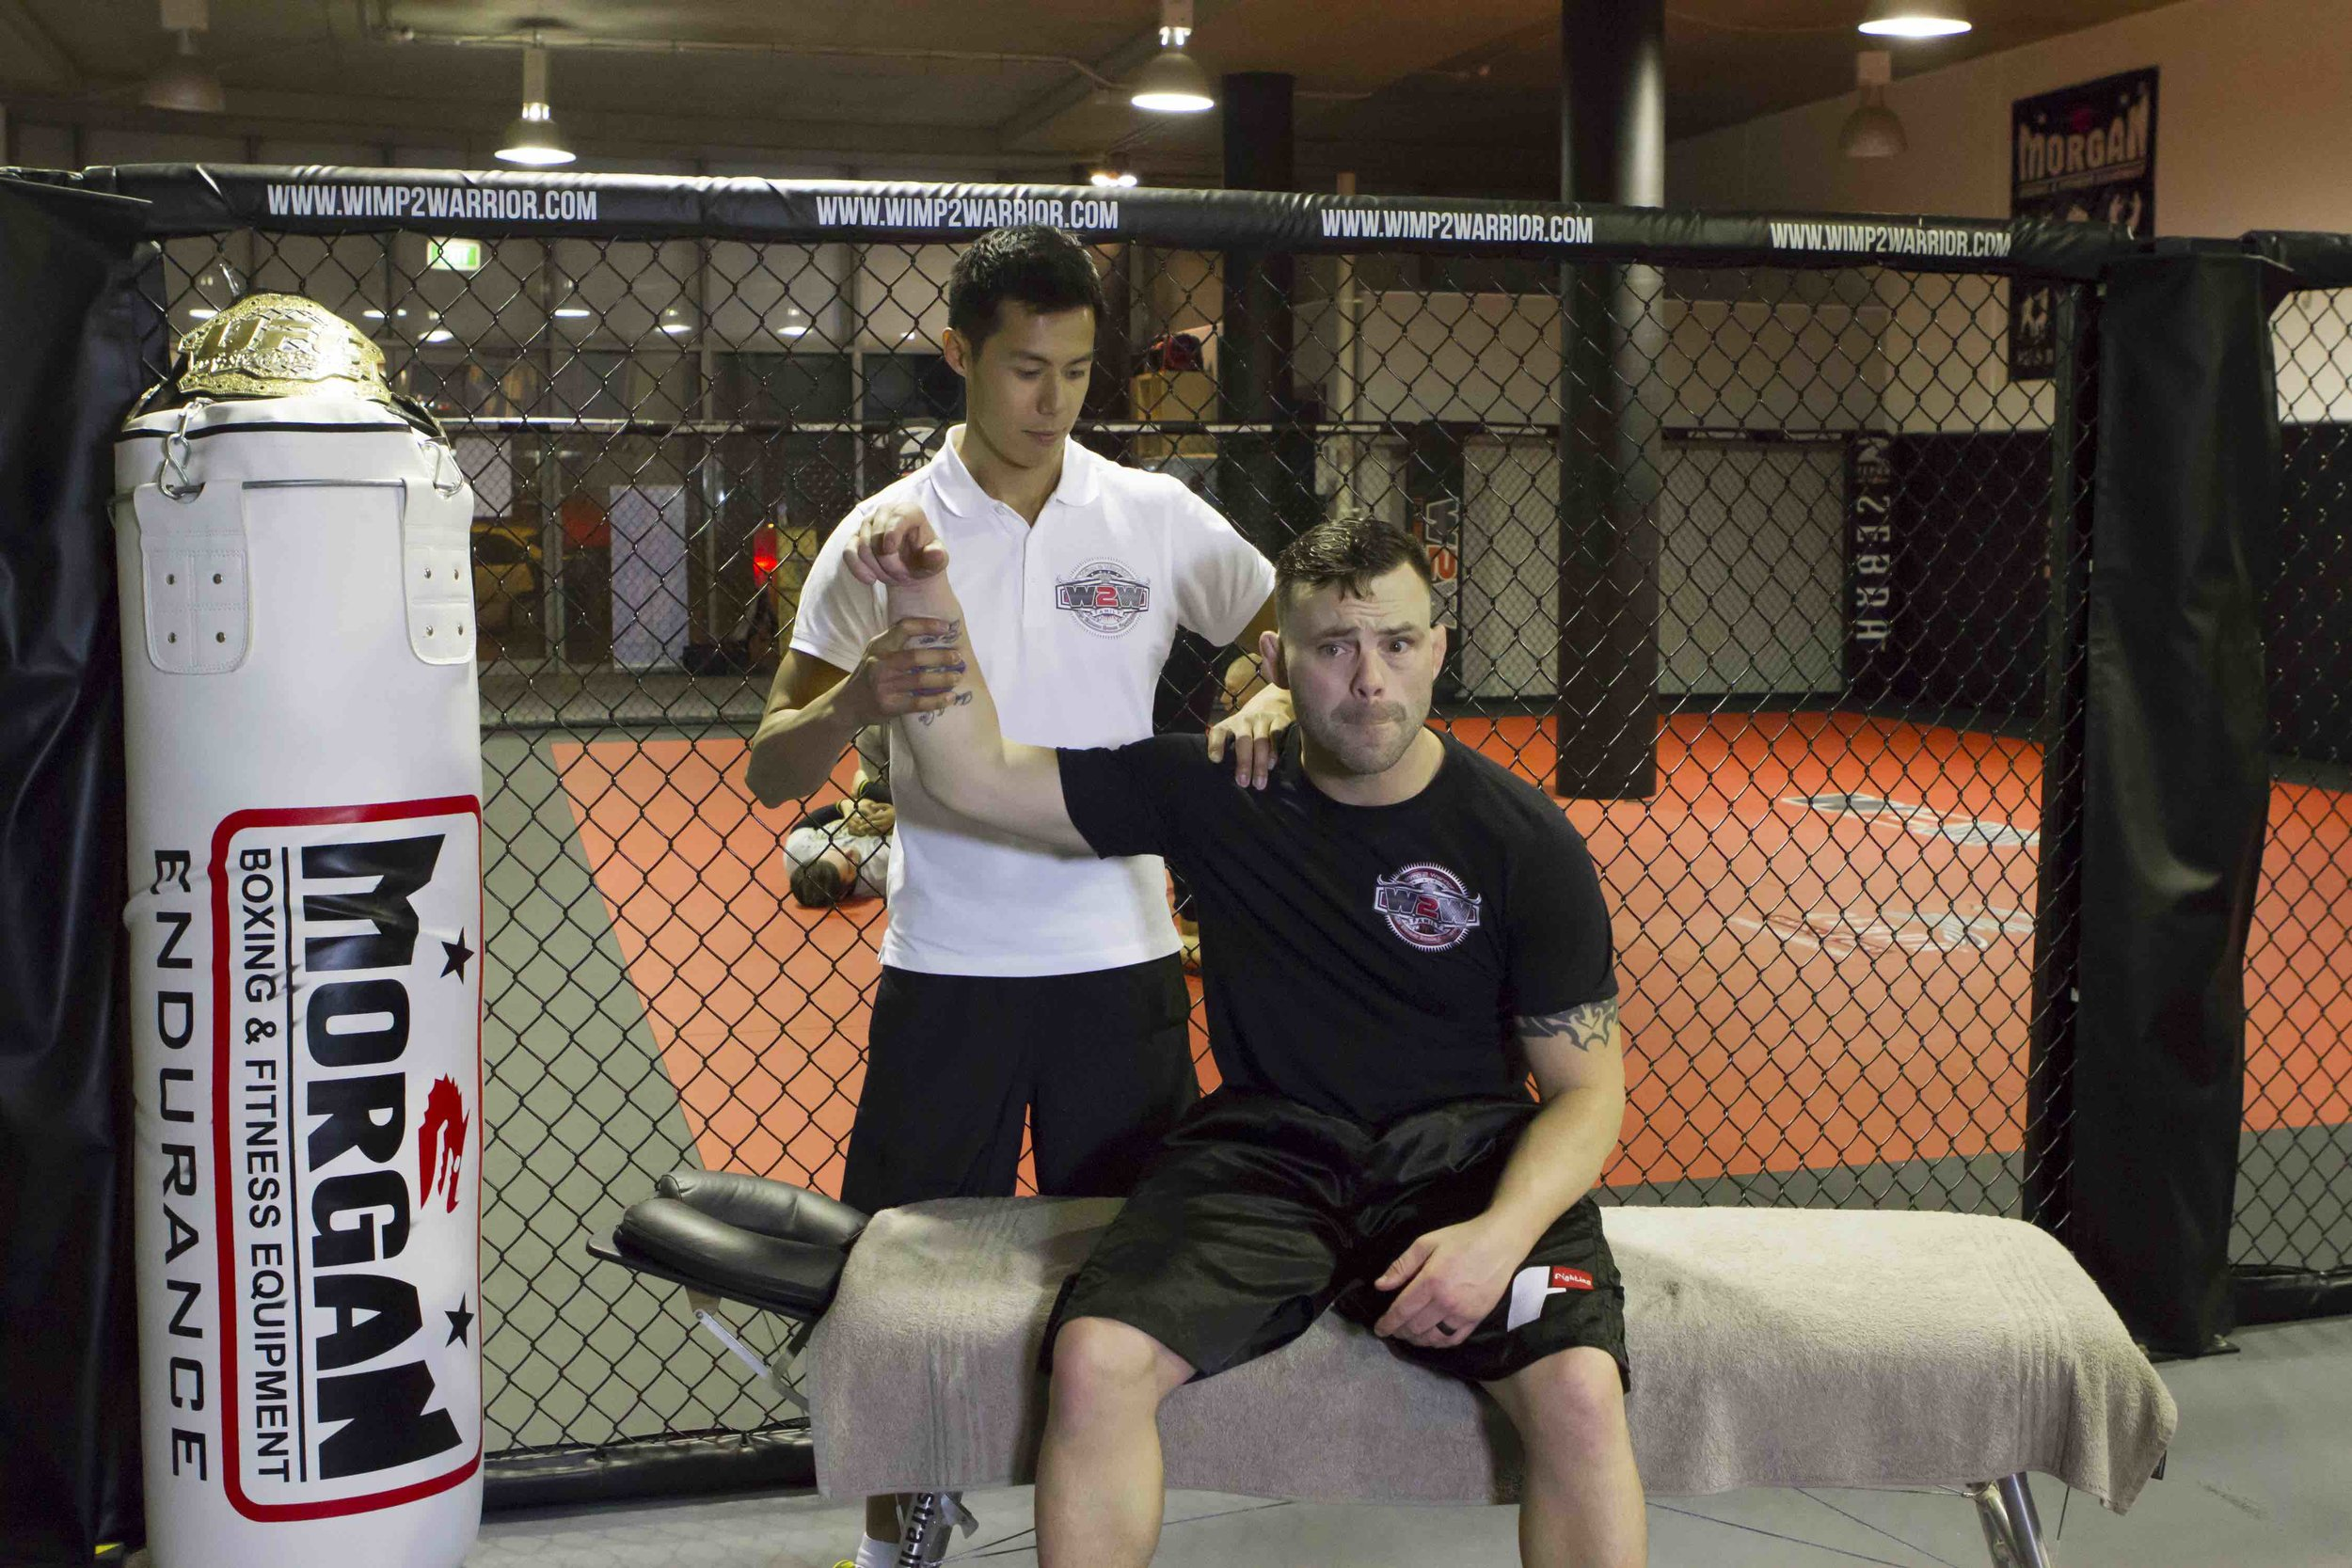 Wimp 2 Warrior MMA TV Series - While working as the sports chiropractor for the Wimp 2 Warrior MMA TV Series, Dr Steve had the opportunity to work with MMA athletes, including former UFC Lightweight Champion, Jens Pulver.